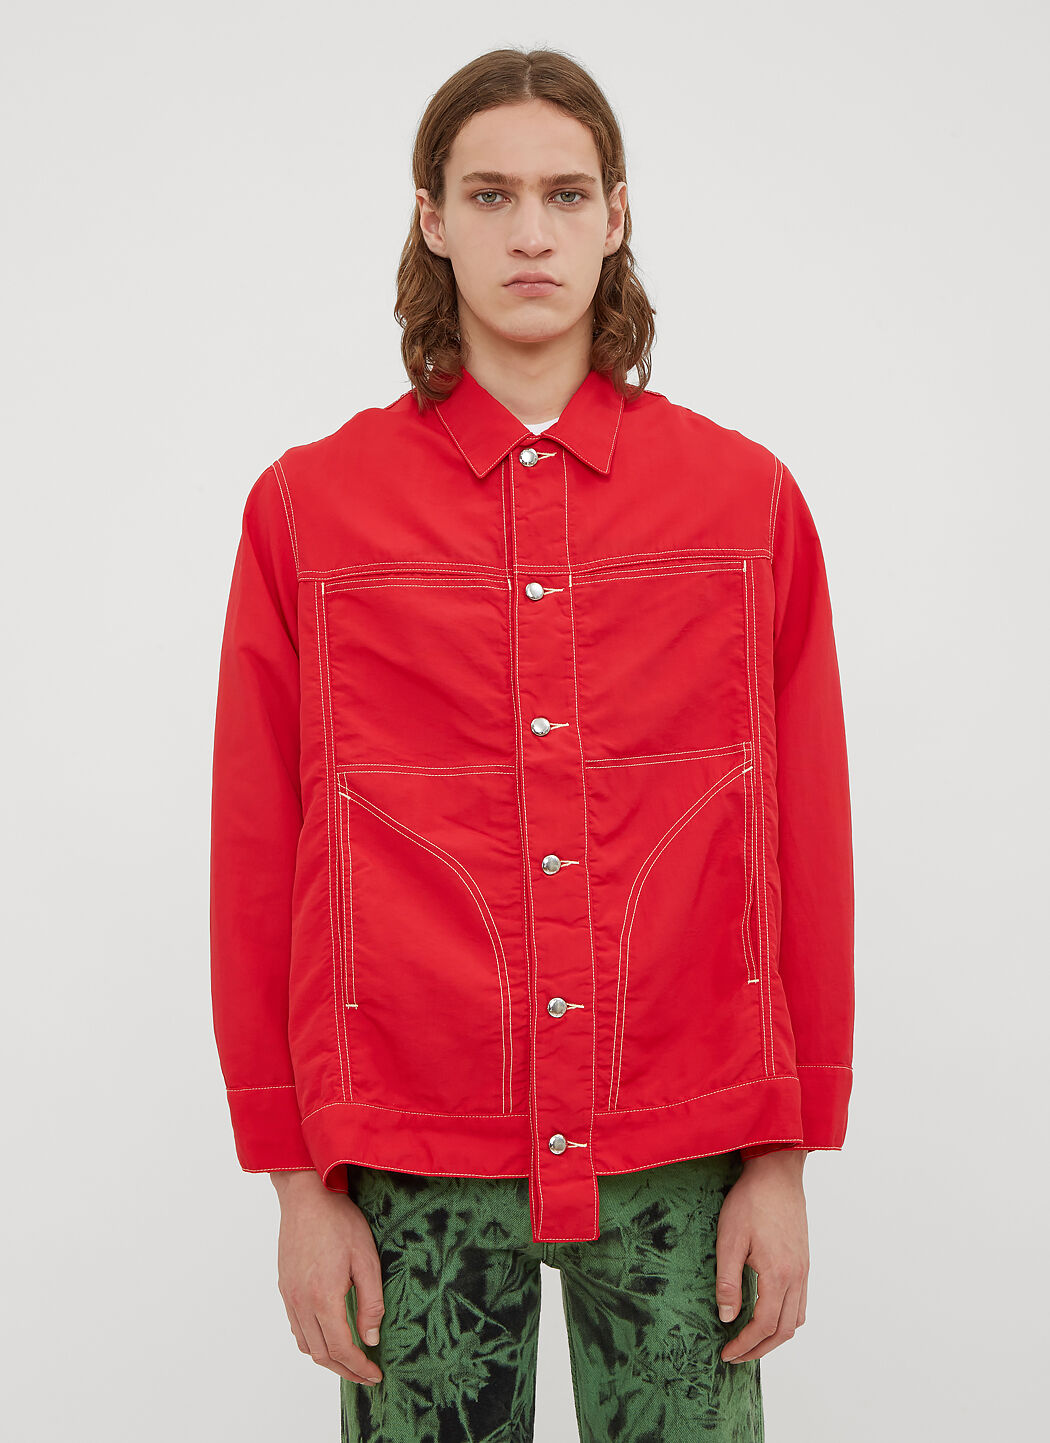 LN Latta Eckhaus CC Nylon in Jacket Shirt Red Denim 0qB0SrWcd